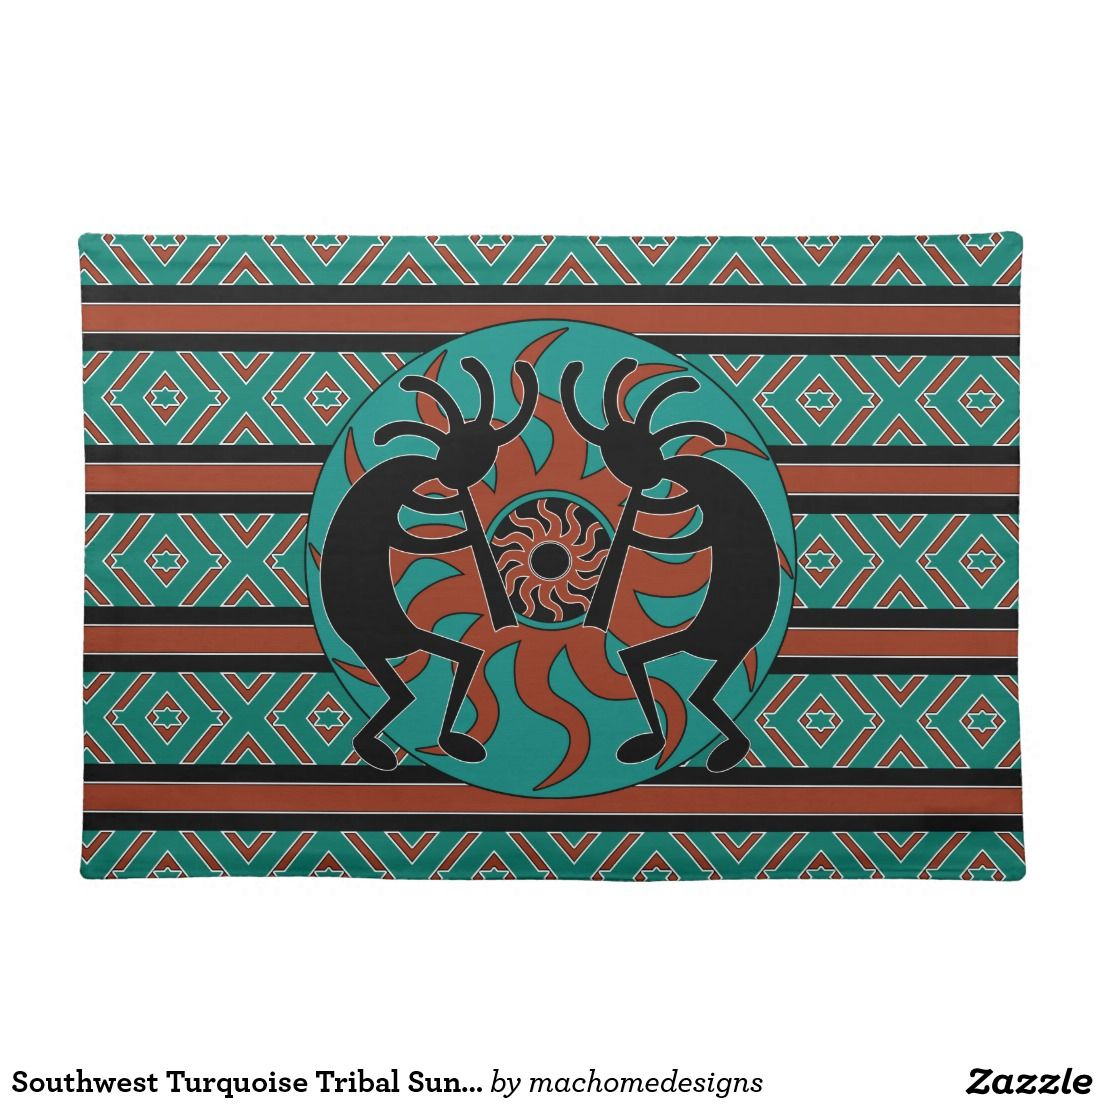 Southwest Turquoise Tribal Sun Kokopelli Placemat Cloth Placemat